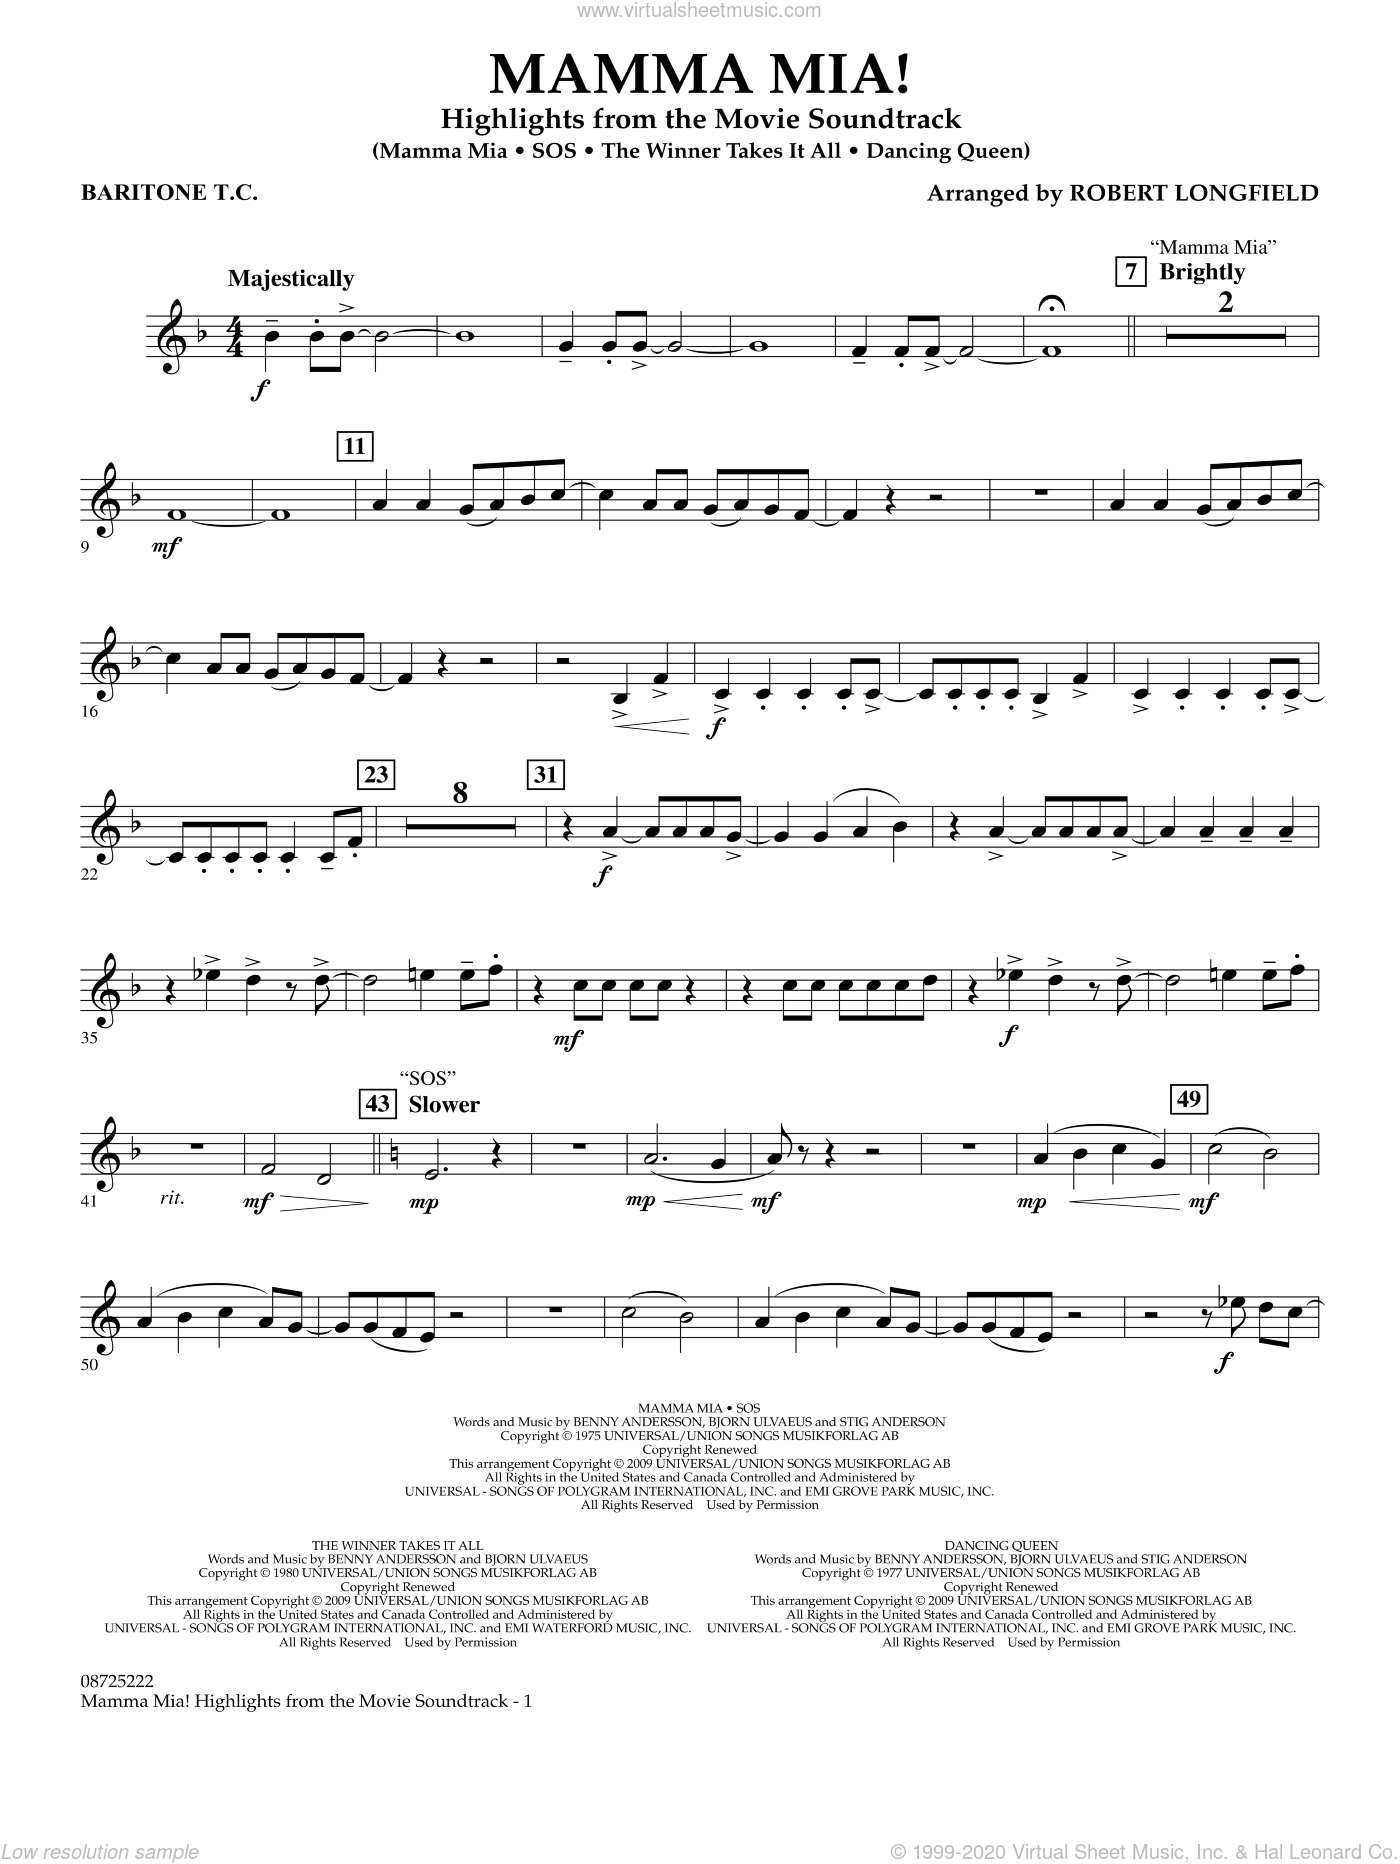 Mamma Mia!, highlights from the movie soundtrack sheet music for concert band (baritone t.c.) by ABBA and Robert Longfield, intermediate skill level